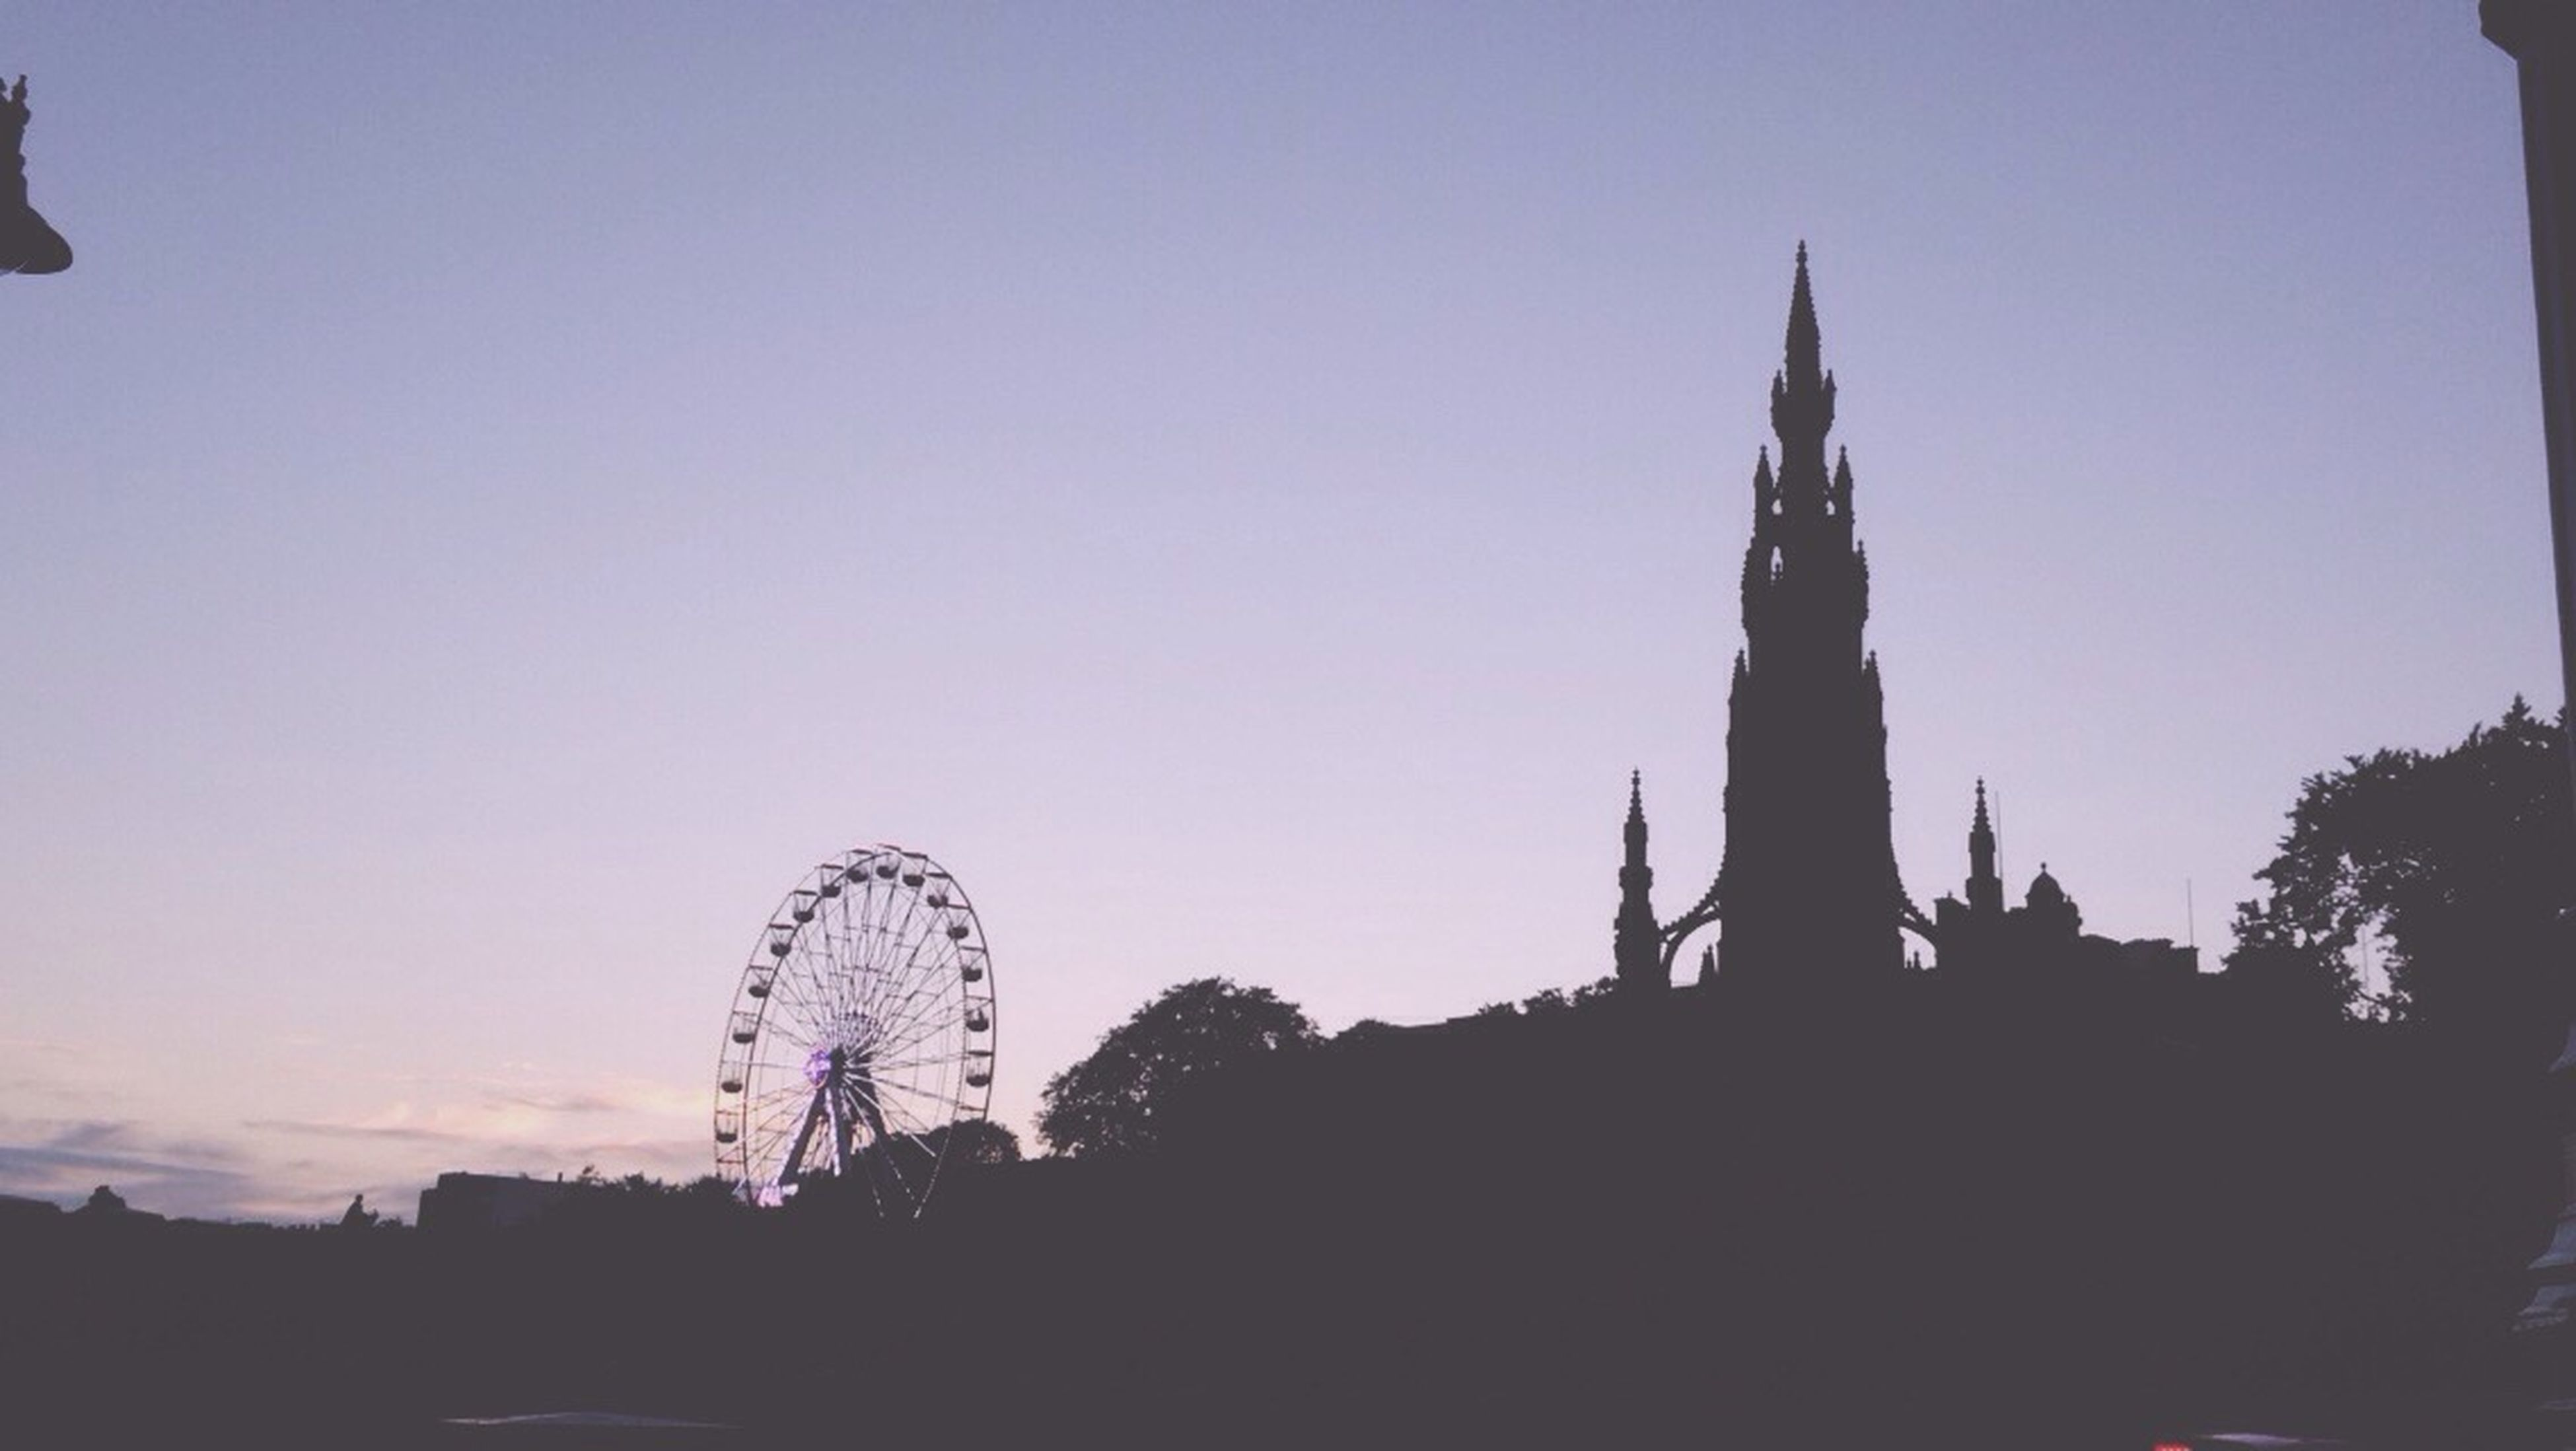 silhouette, clear sky, low angle view, outline, outdoors, high section, sky, amusement park, no people